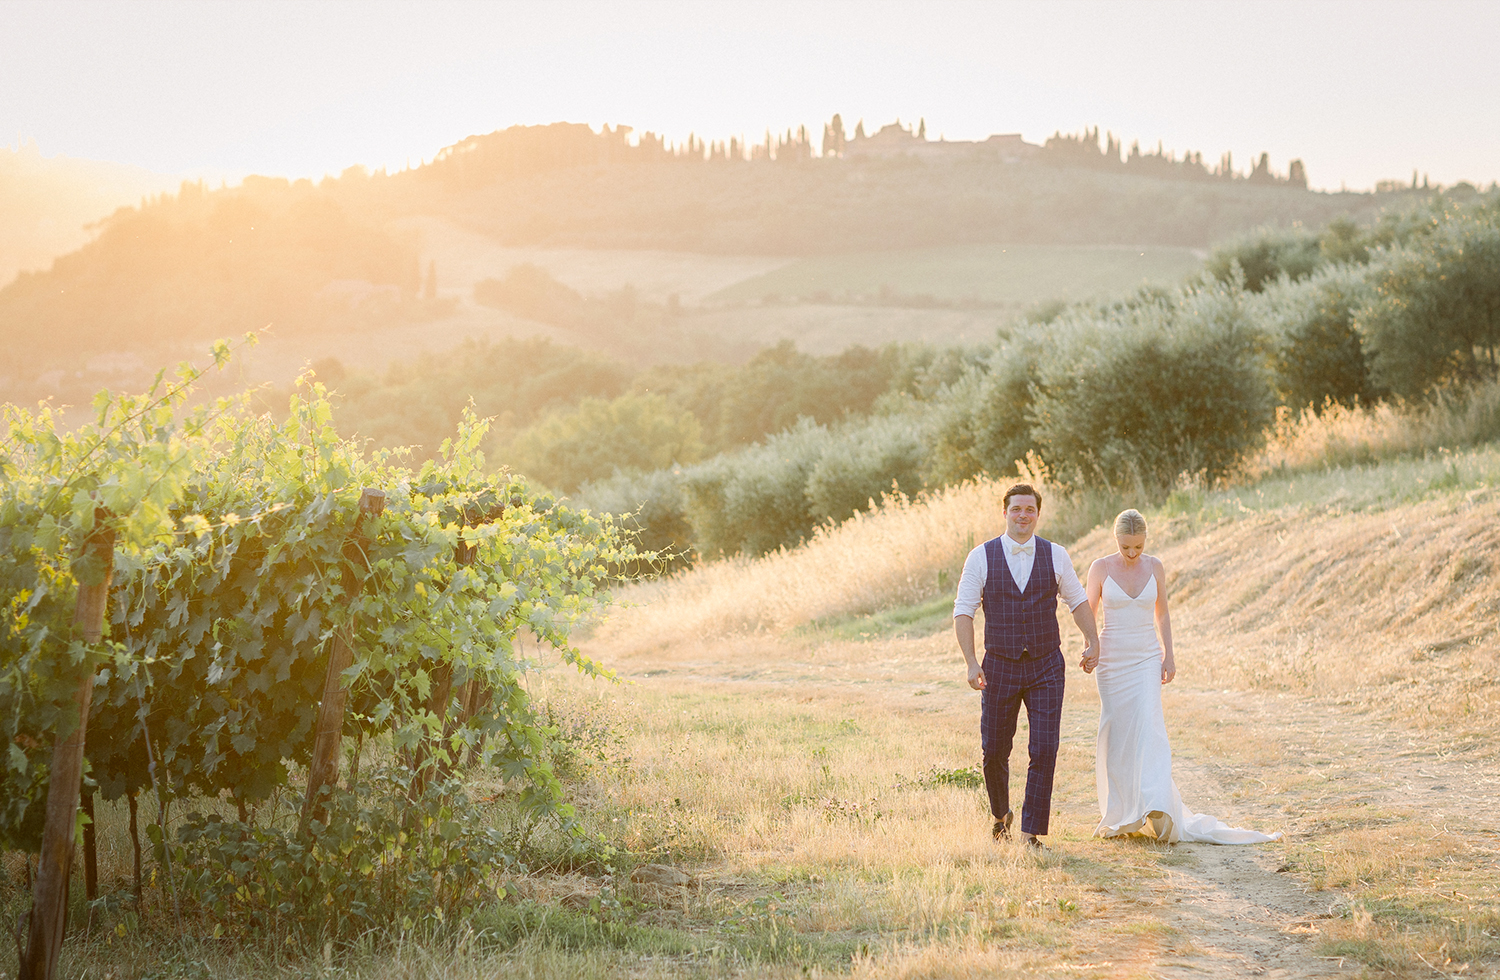 DESTINATION WEDDING IN TUSCANY SAN GIMIGNANO